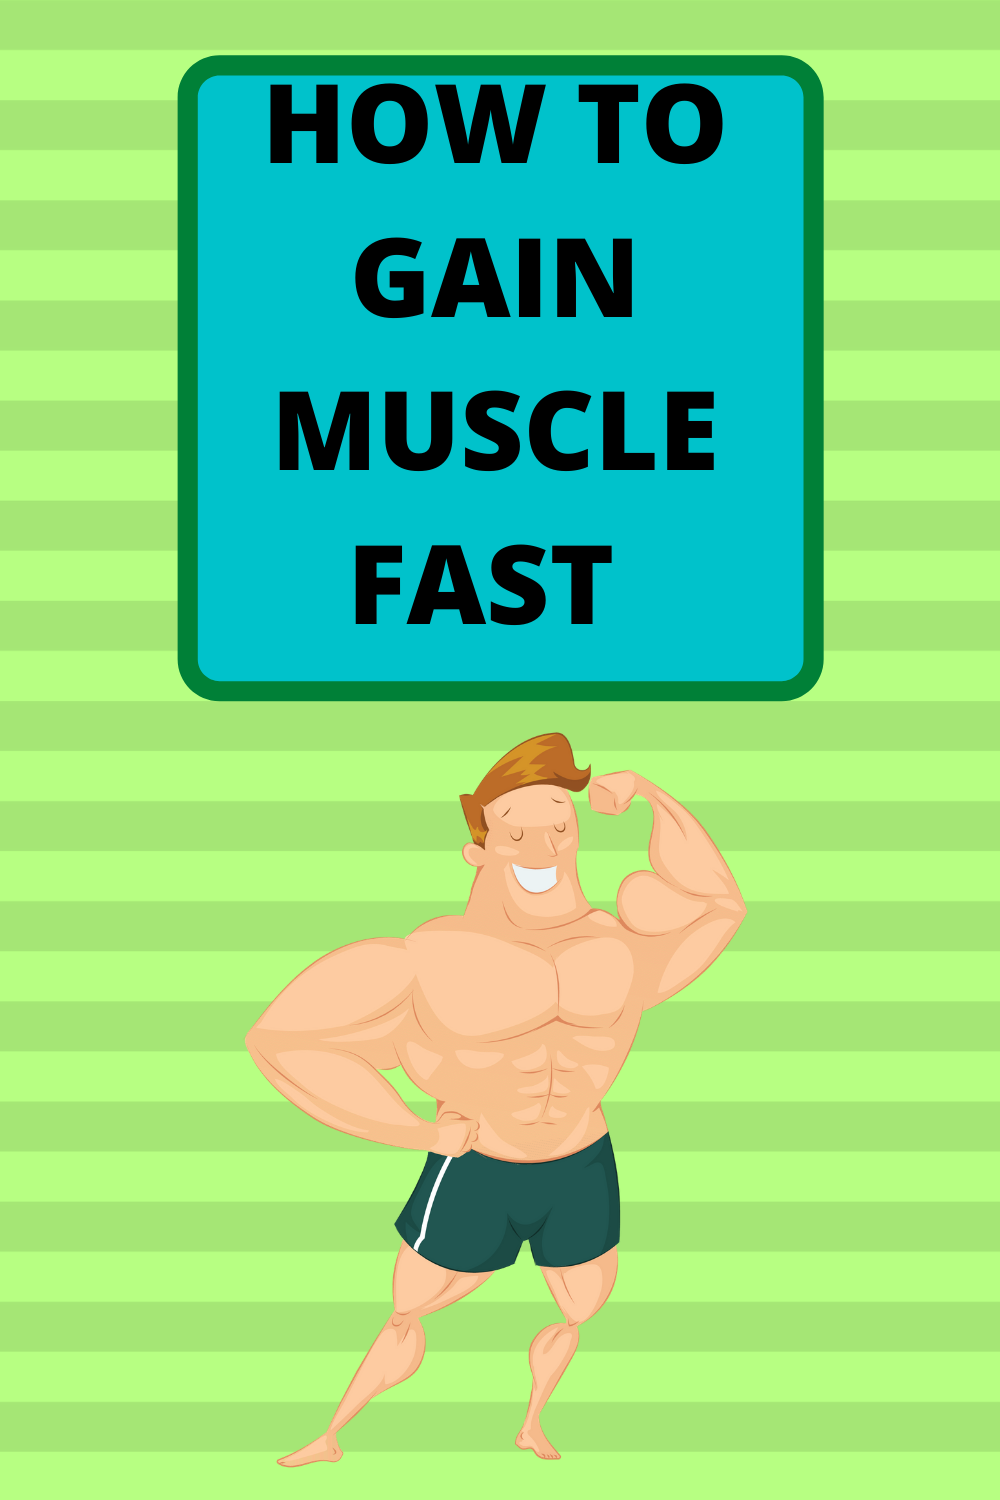 Muscles size increases when the muscles continually challenges with higher weights. By performing ri...